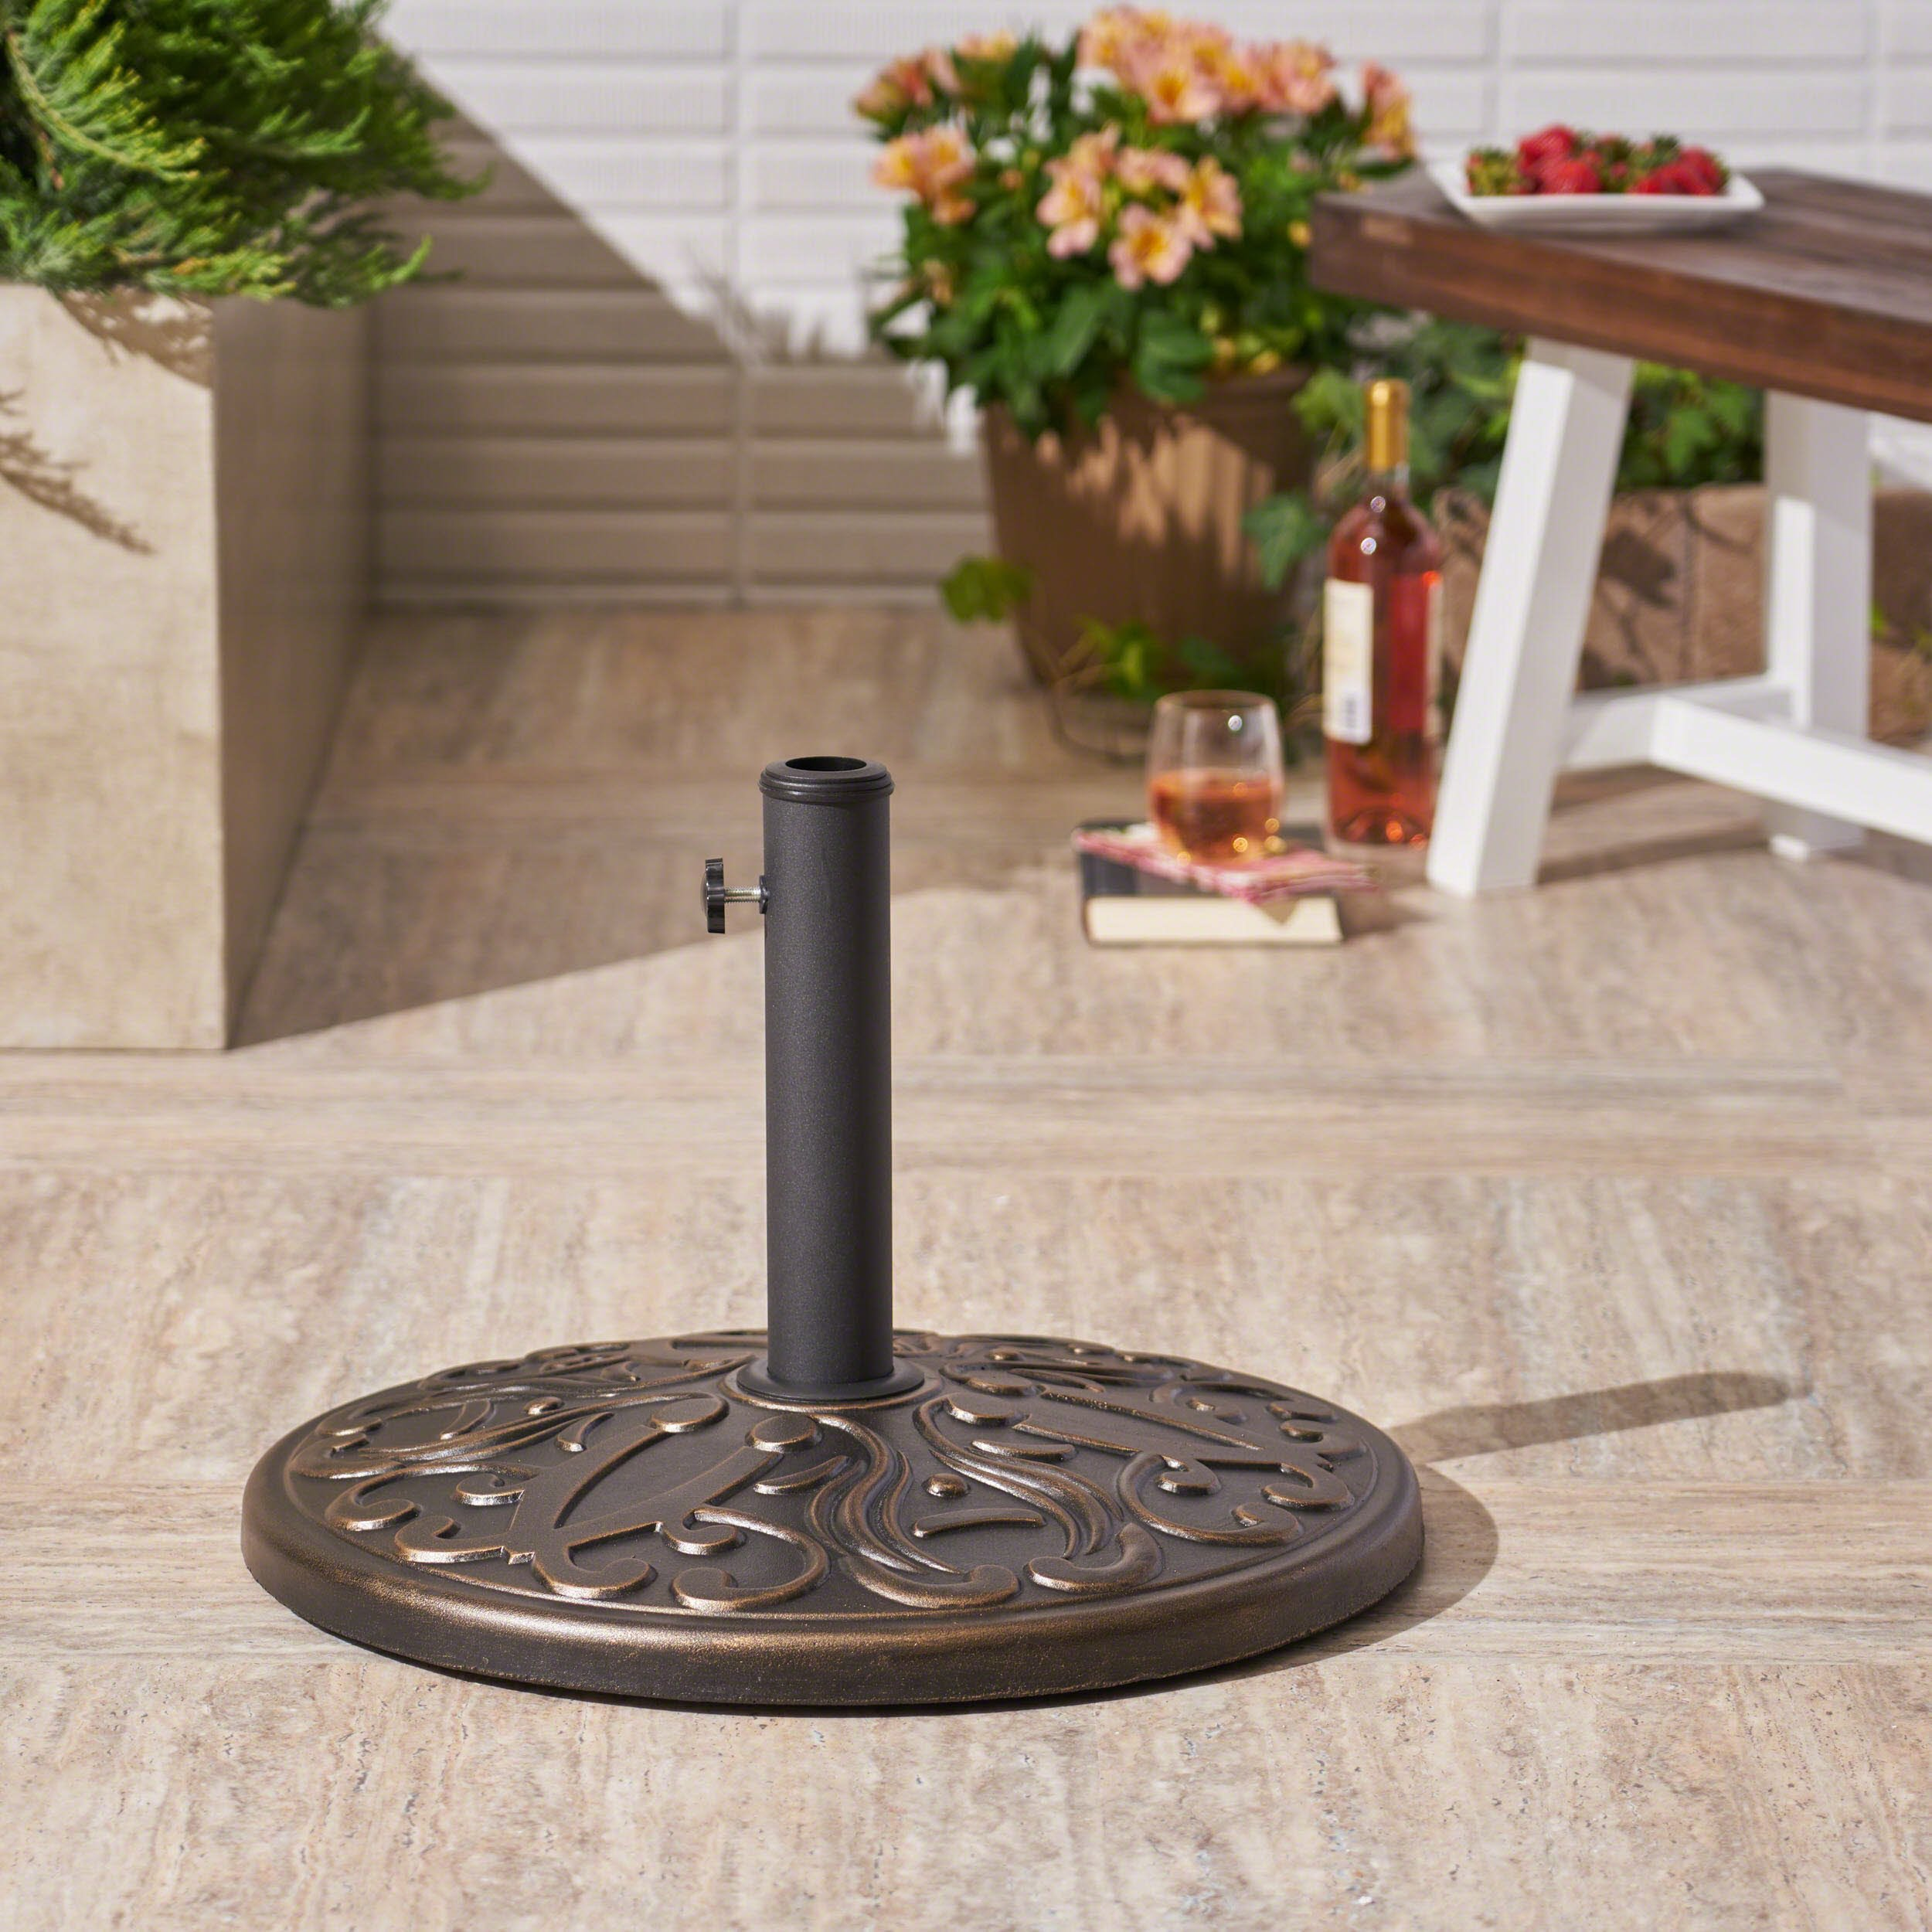 Great Deal Furniture | Irene | Outdoor Concrete Circular Umbrella Base | 60LBS | in Hammered Dark Copper